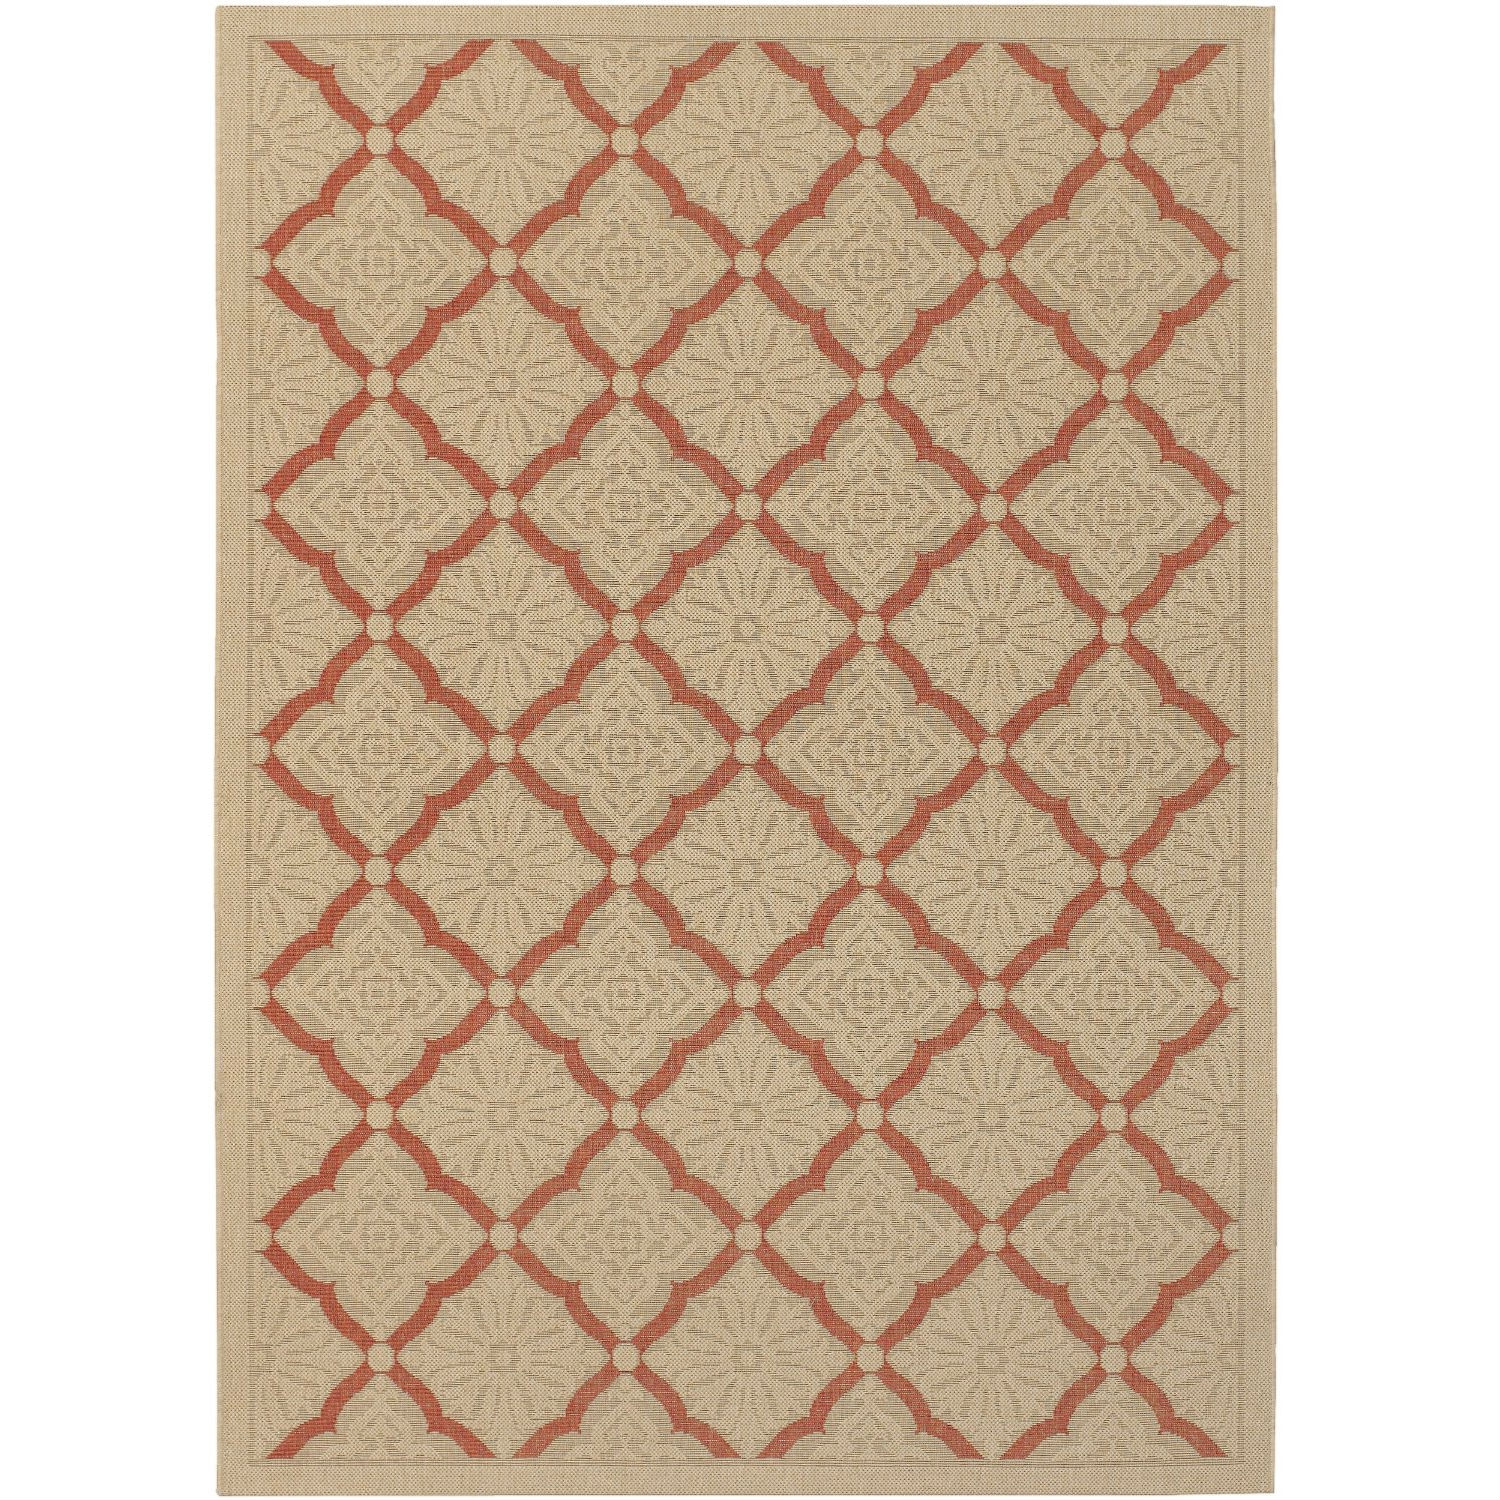 4'11 x 7'6 Cream Terracotta Trellis Indoor Outdoor Area Rug, CFS8549125 :  Varying motifs, ranging from graphic stripes to patterned shapes, take center stage in this 4'11 x 7'6 Cream Terracotta Trellis Indoor Outdoor Area Rug. Taking its cue from the surrounding environment, this power-loomed collection can be used to create tranquil retreats for the home. Power-loomed of 100-percent polypropylene, each of the dynamic patterns offer a highly durable pile that affords superior comfort and fuss-free maintenance. Designed specifically to withstand outdoor elements, Five Seasons is mold and mildew resistant, as well as UV stabilized to ensure each color, from cool to warm tones, retains their vibrancy even after months of exposure to the sun and other weather conditions. Suitable for indoor or outdoor use; 100-percent  recyclable; Imported.